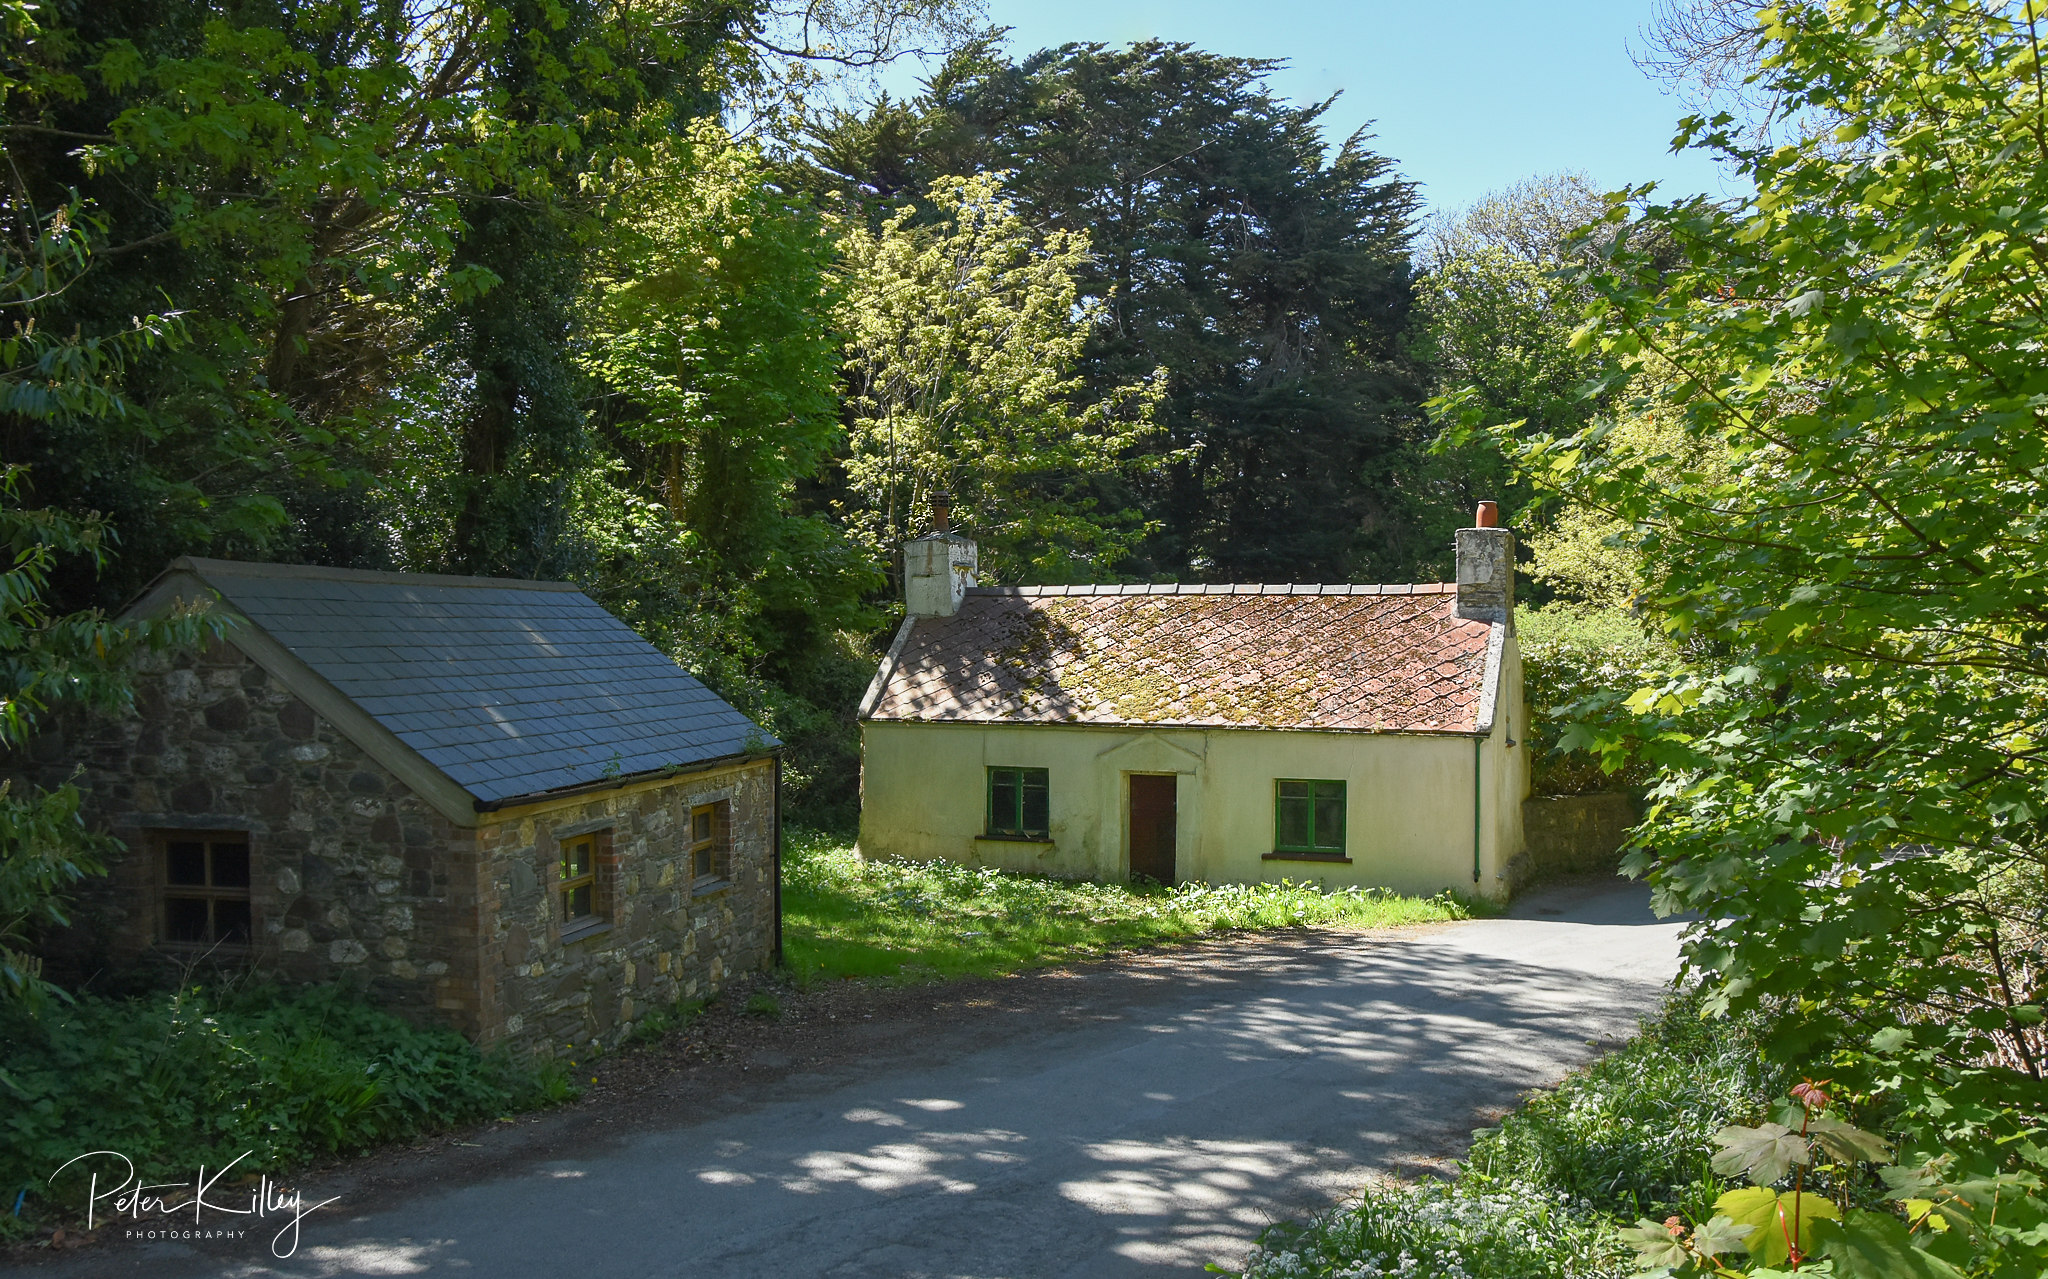 Sulby Cottage © Peter Killey - www.manxscenes.com